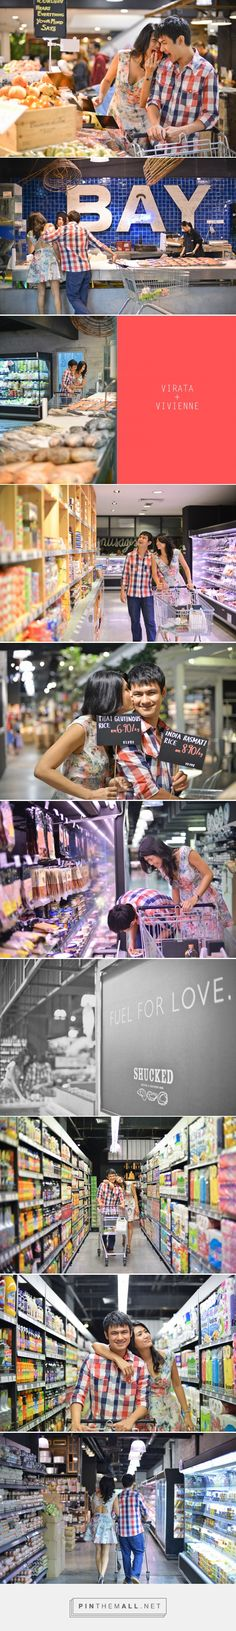 Beautiful documentary style of couple grocery shopping // PreWedding photos // Andrew Yep Photographie http://www.onethreeonefour.com/listing/AndrewYepPhotographie